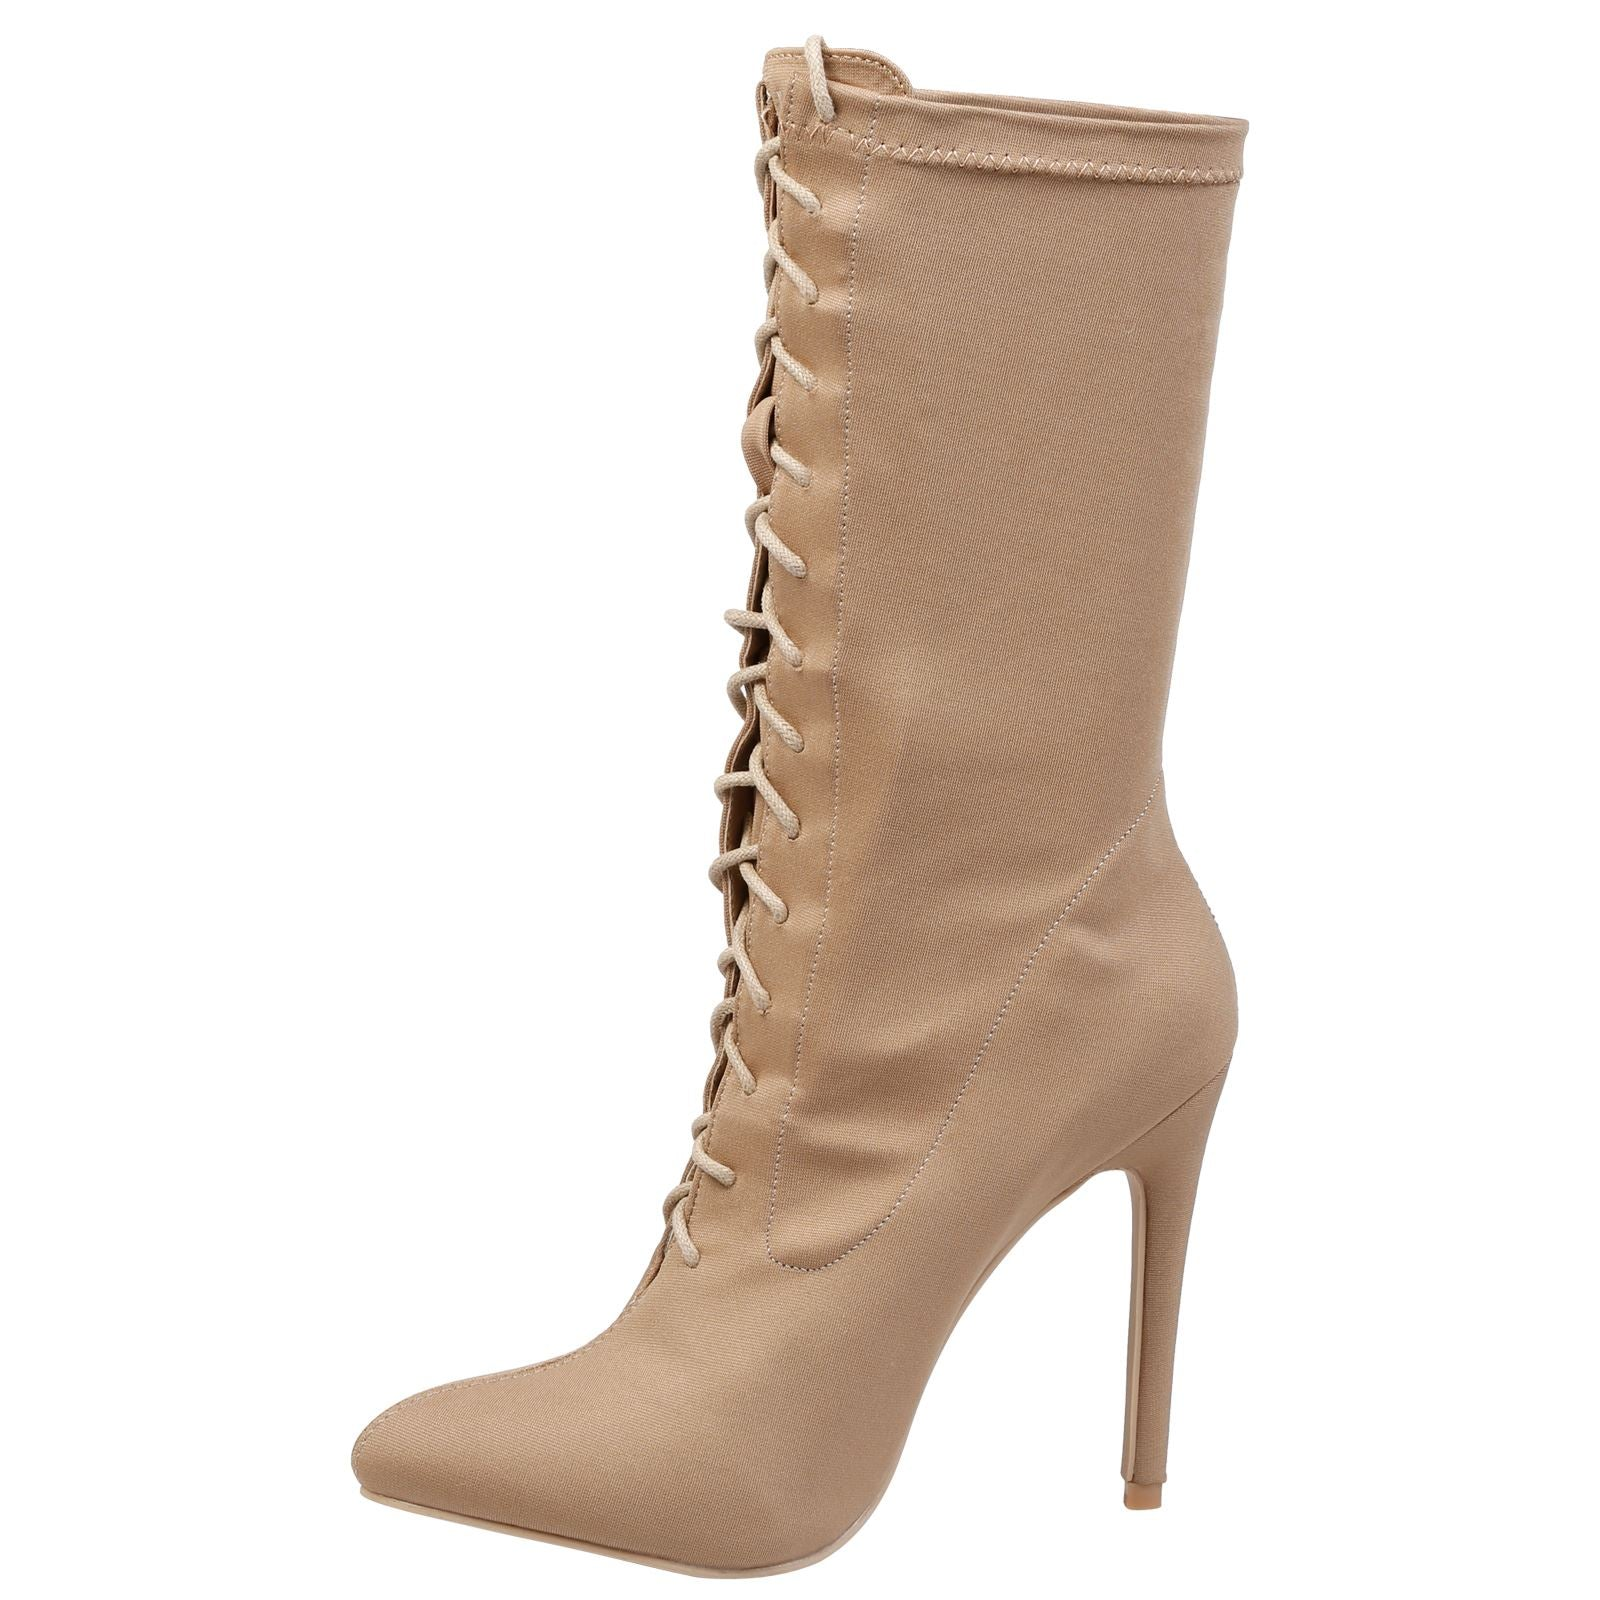 Crystal Lace Up Mid Calf Boots in Nude - Feet First Fashion